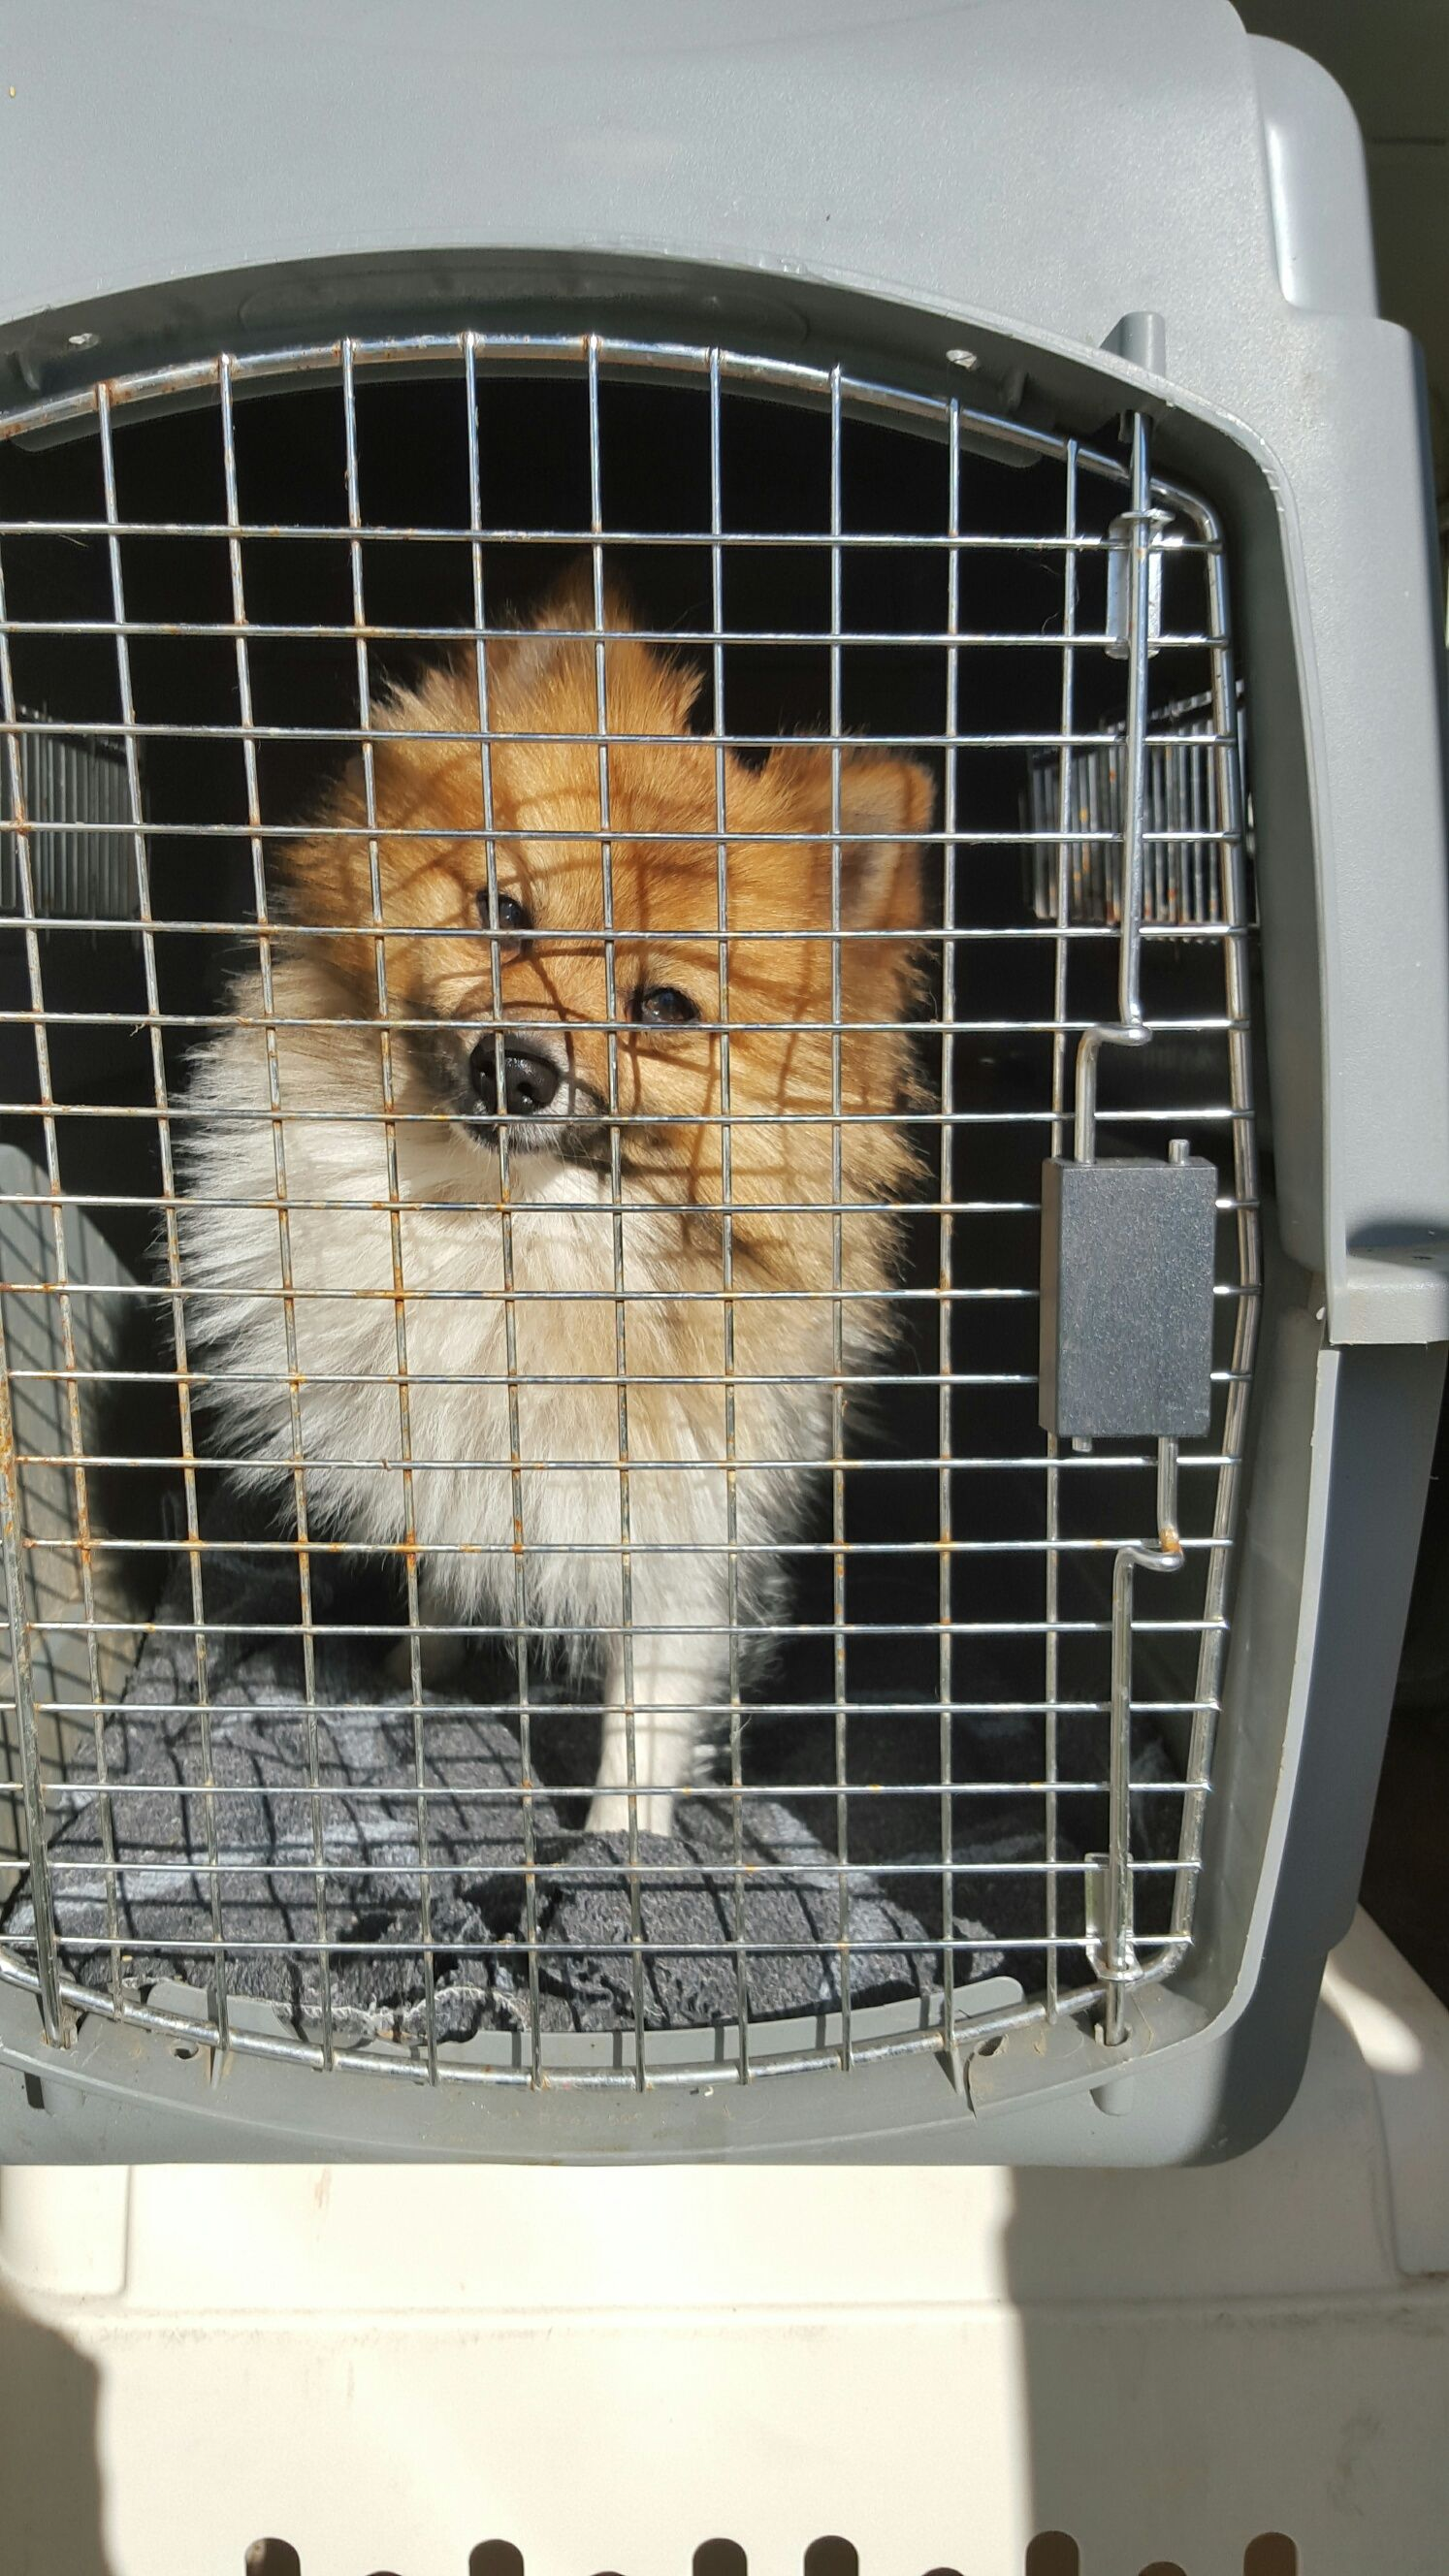 Pomeranian Dog For Adoption In Vacaville Ca Adn 413819 On